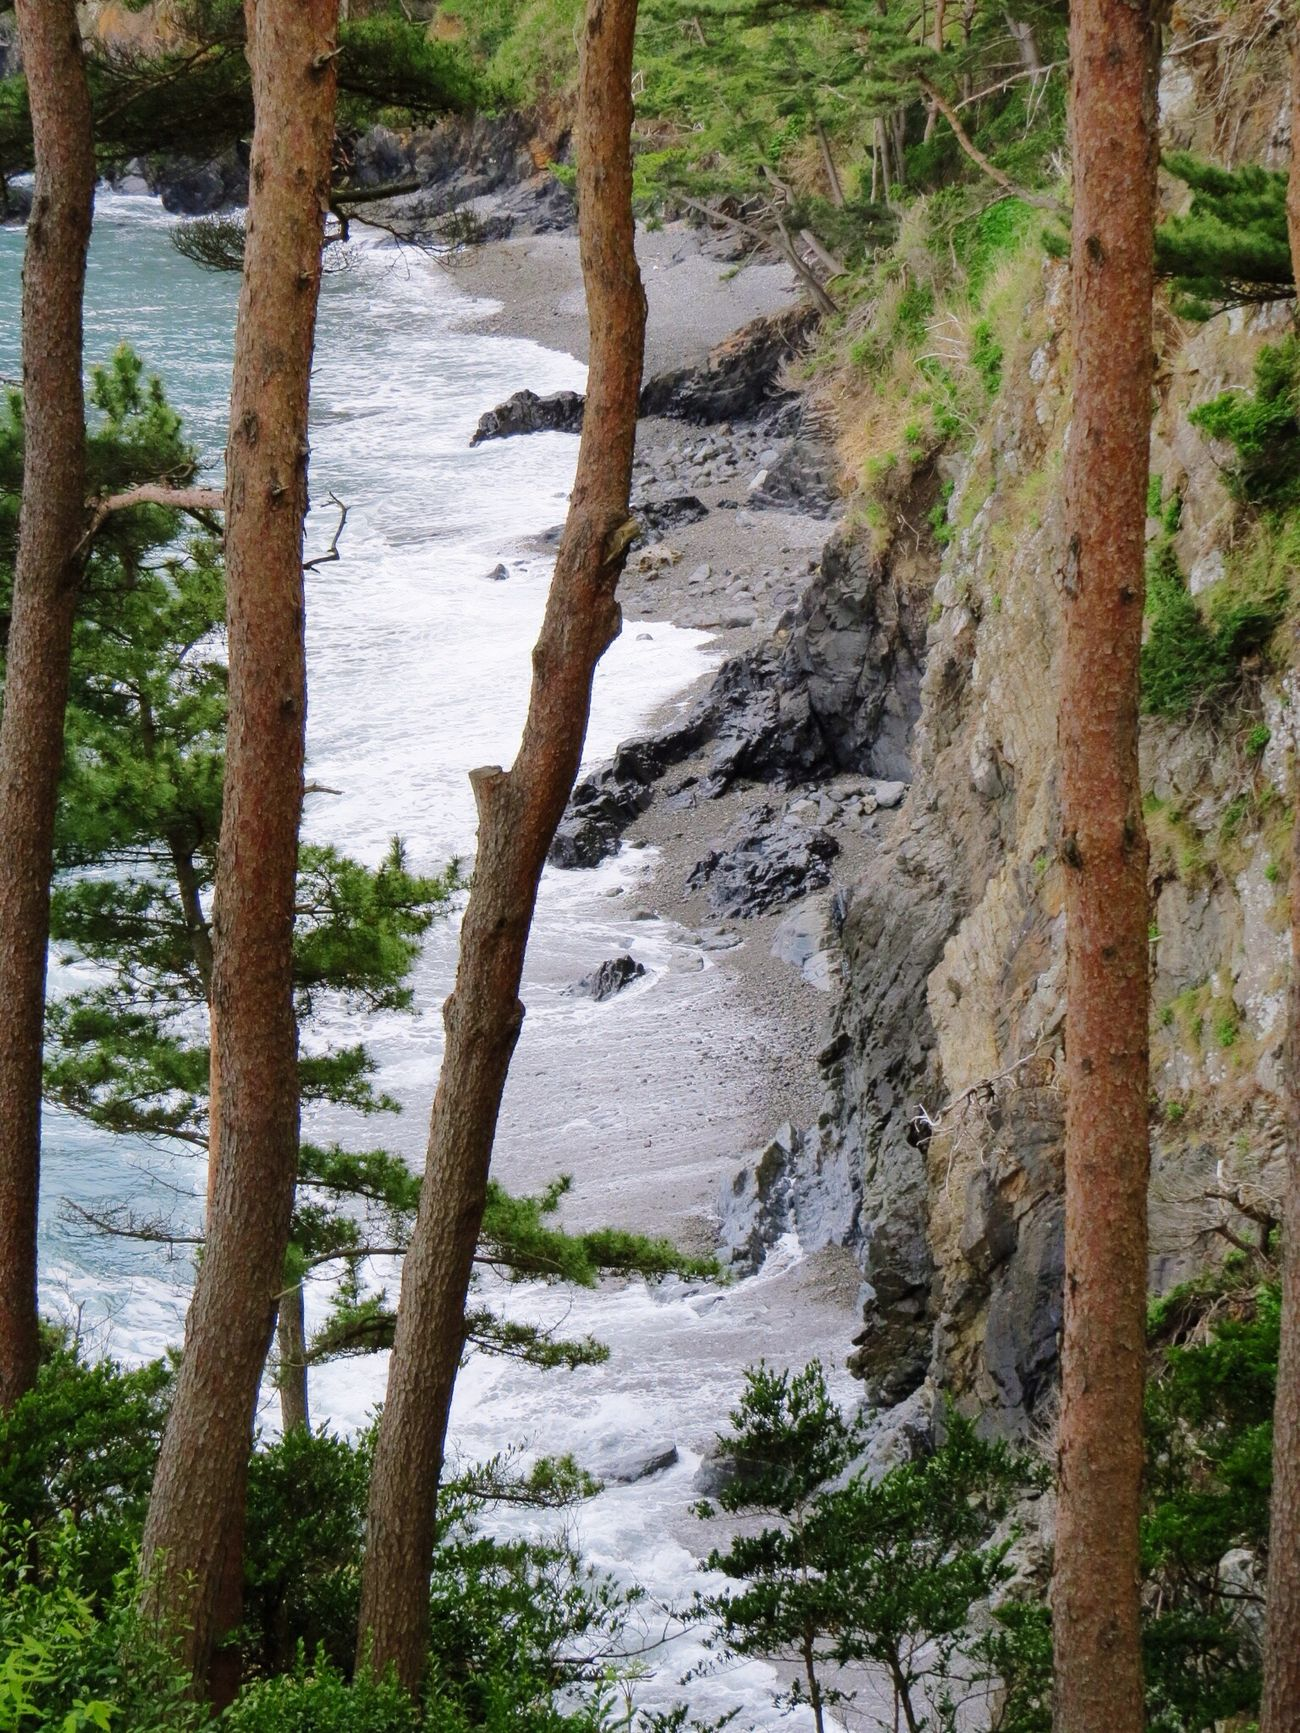 Travel Photography Travel Destinations Japan Iwate 大船渡 Oofunato 碁石海岸 Goisi-Kaigsn(coast) Tranquil Scene Beauty In Nature Nature Seaside Sea Pine Pine Grove Pinetrees